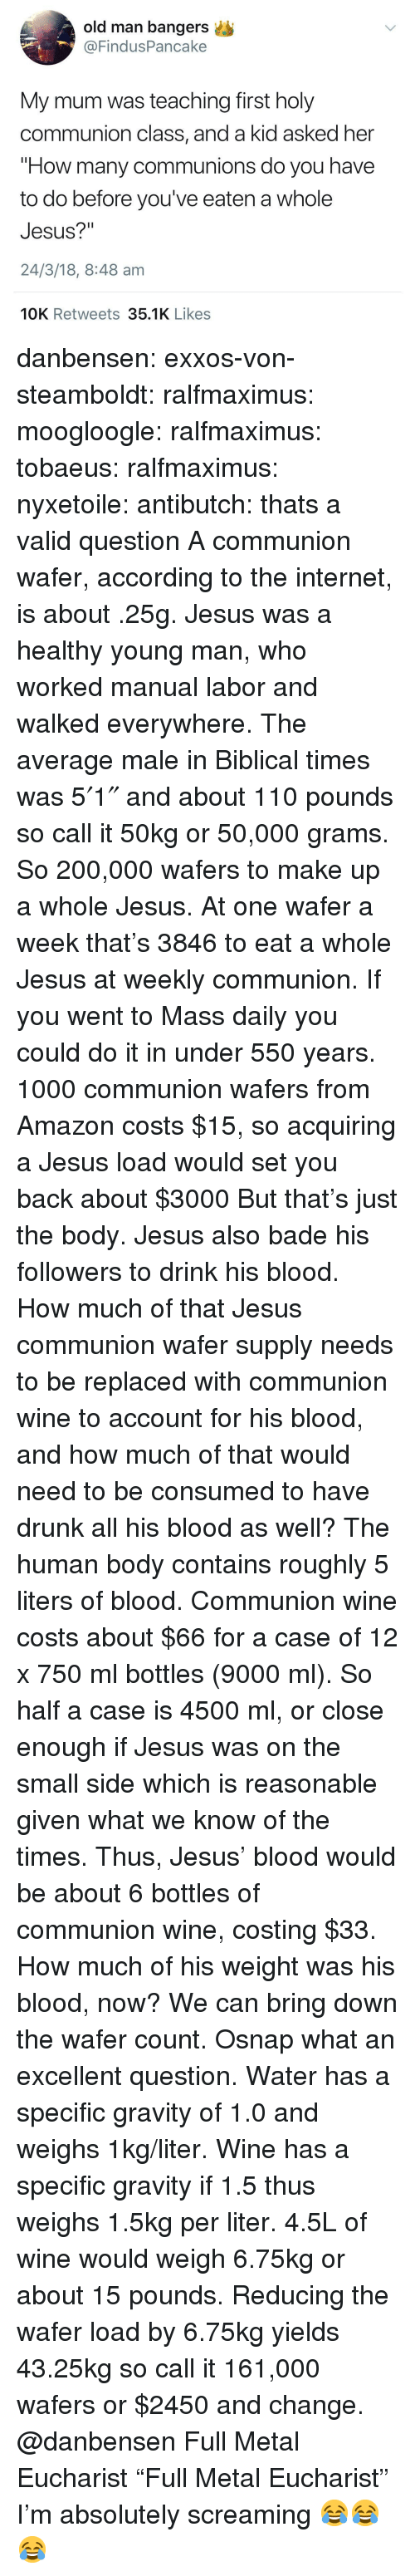 "Amazon, Andrew Bogut, and Bailey Jay: old man bangers  @FindusPancake  My mum was teaching first holy  communion class, and a kid asked her  ""How many communions do you have  to do before you've eaten a whole  Jesus?""  24/3/18, 8:48 am  10K Retweets 35.1K Likes danbensen:  exxos-von-steamboldt:  ralfmaximus: moogloogle:  ralfmaximus:   tobaeus:   ralfmaximus:  nyxetoile:   antibutch: thats a valid question A communion wafer, according to the internet, is about .25g. Jesus was a healthy young man, who worked manual labor and walked everywhere. The average male in Biblical times was 5′1″ and about 110 pounds so call it 50kg or 50,000 grams. So 200,000 wafers to make up a whole Jesus. At one wafer a week that's 3846 to eat a whole Jesus at weekly communion. If you went to Mass daily you could do it in under 550 years.   1000 communion wafers from Amazon costs $15, so acquiring a Jesus load would set you back about $3000  But that's just the body. Jesus also bade his followers to drink his blood. How much of that Jesus communion wafer supply needs to be replaced with communion wine to account for his blood, and how much of that would need to be consumed to have drunk all his blood as well?   The human body contains roughly 5 liters of blood. Communion wine costs about $66 for a case of 12 x 750 ml bottles (9000 ml). So half a case is 4500 ml, or close enough if Jesus was on the small side which is reasonable given what we know of the times. Thus, Jesus' blood would be about 6 bottles of communion wine, costing $33.   How much of his weight was his blood, now? We can bring down the wafer count.   Osnap what an excellent question. Water has a specific gravity of 1.0 and weighs 1kg/liter. Wine has a specific gravity if 1.5 thus weighs 1.5kg per liter. 4.5L of wine would weigh 6.75kg or about 15 pounds. Reducing the wafer load by 6.75kg yields 43.25kg so call it 161,000 wafers or $2450 and change.  @danbensen  Full Metal Eucharist  ""Full Metal Eucharist"" I'm absolutely screaming 😂😂😂"